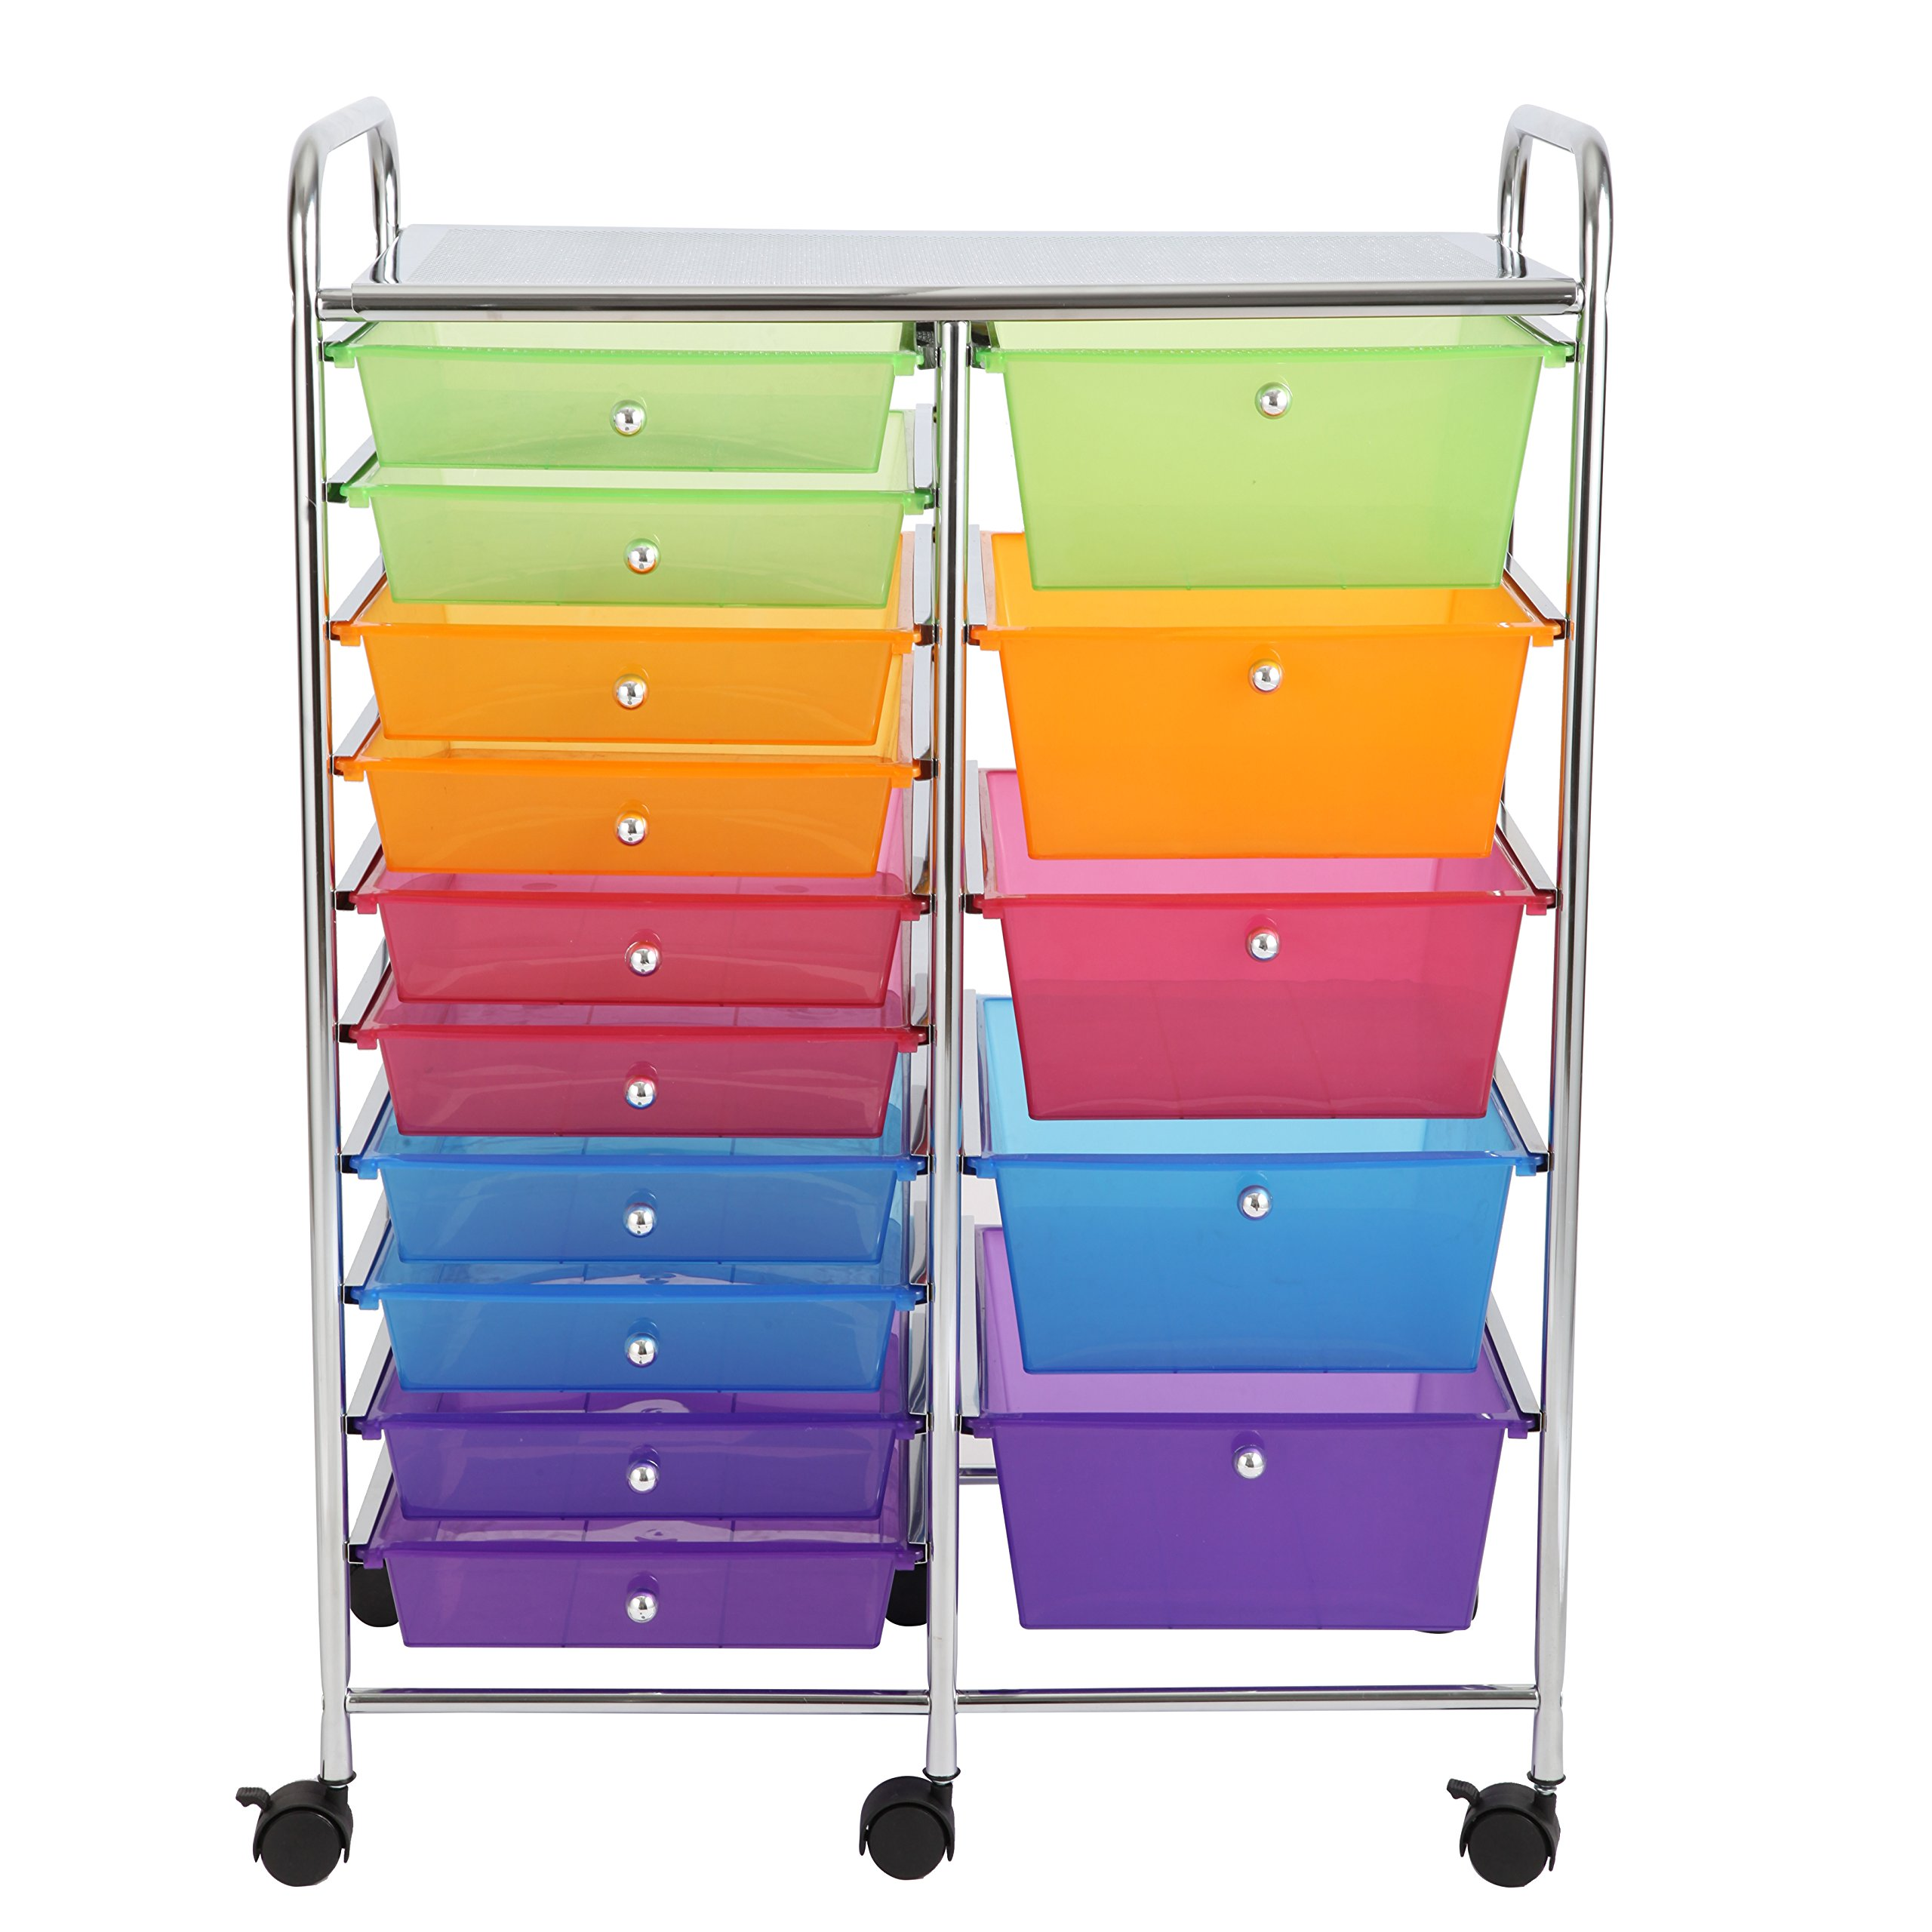 Finnhomy 15-Drawer Rolling Cart,Storage Rolling Carts with Semi-transparent Mutli Color Drawers, Organizer Cart for School, Office, Home, Beauty Salon,Utility Cart with Wheels by Finnhomy